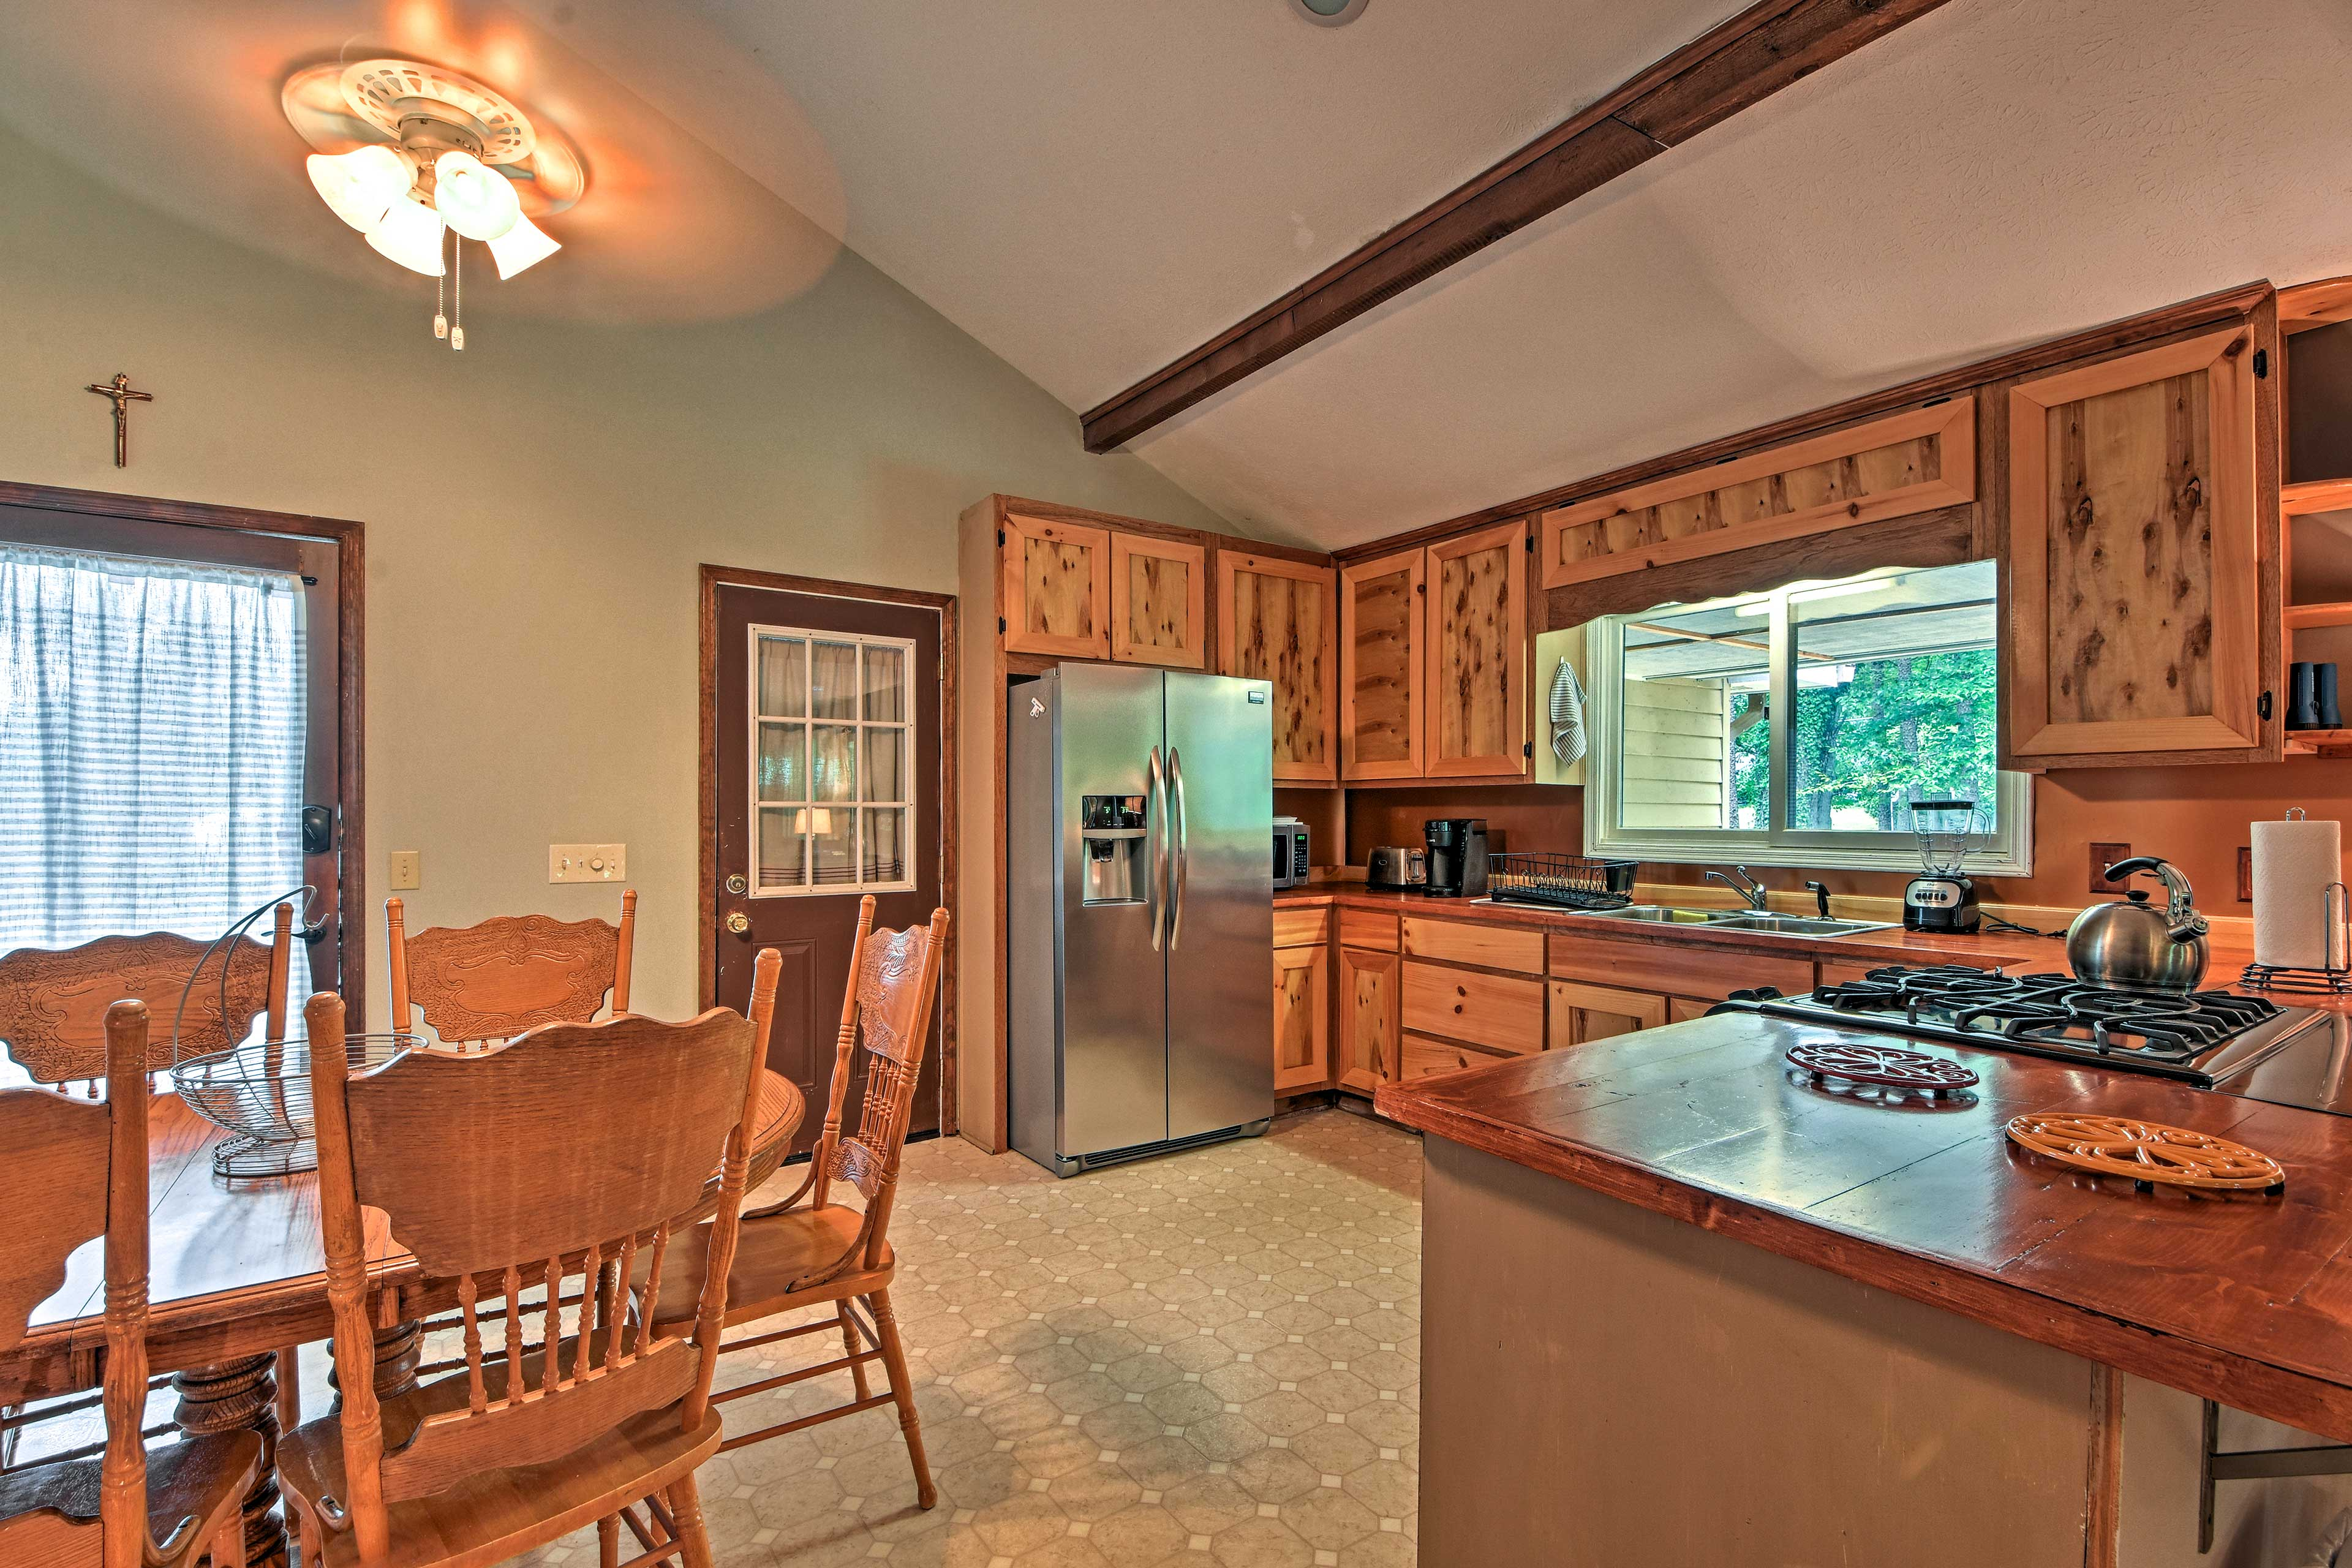 The open floor plan living area flows into the fully equipped kitchen.